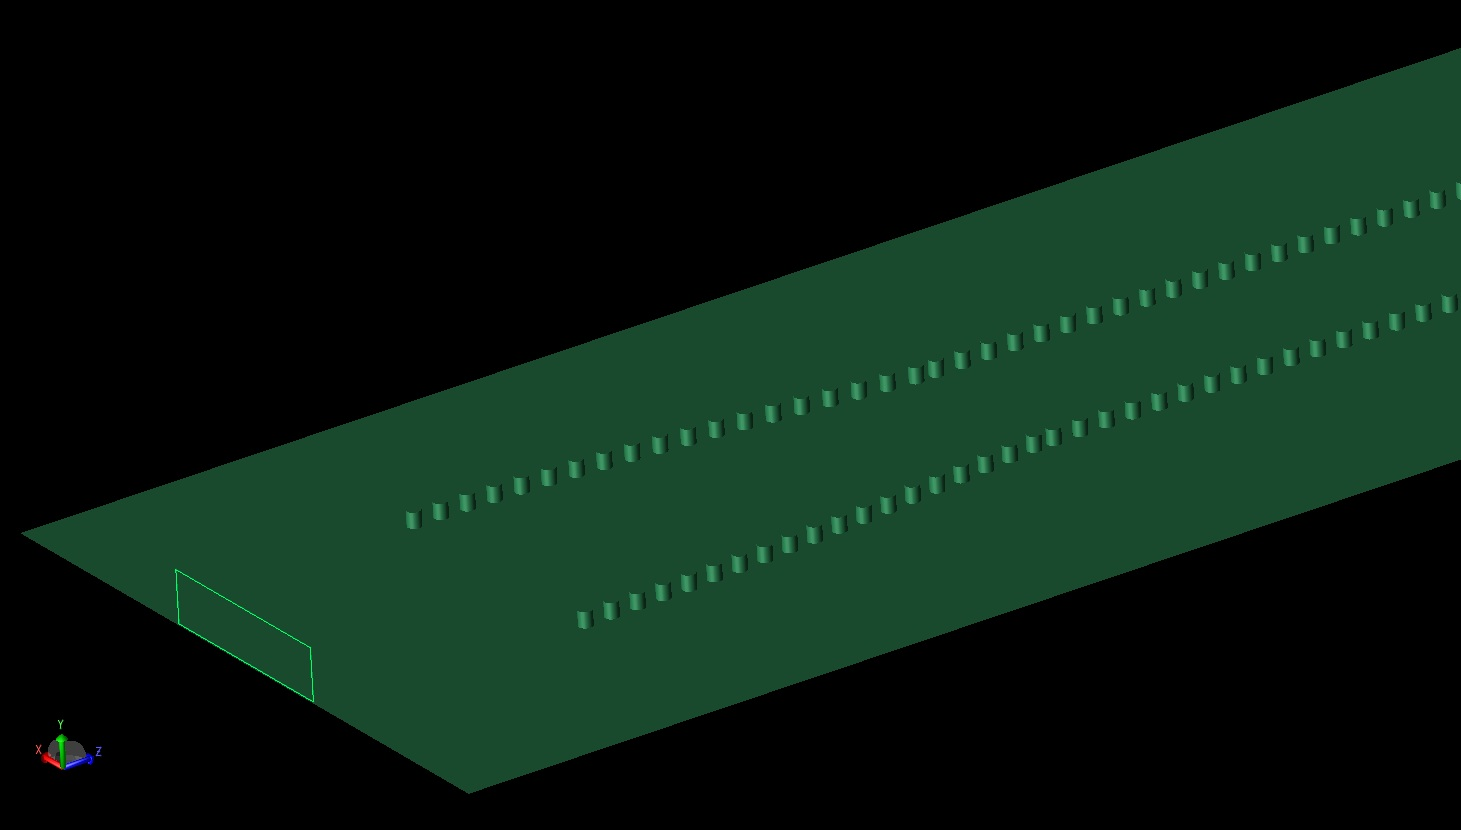 Figure 5: In this figure the substrate layer has been removed and the ground plane and vias are visible.